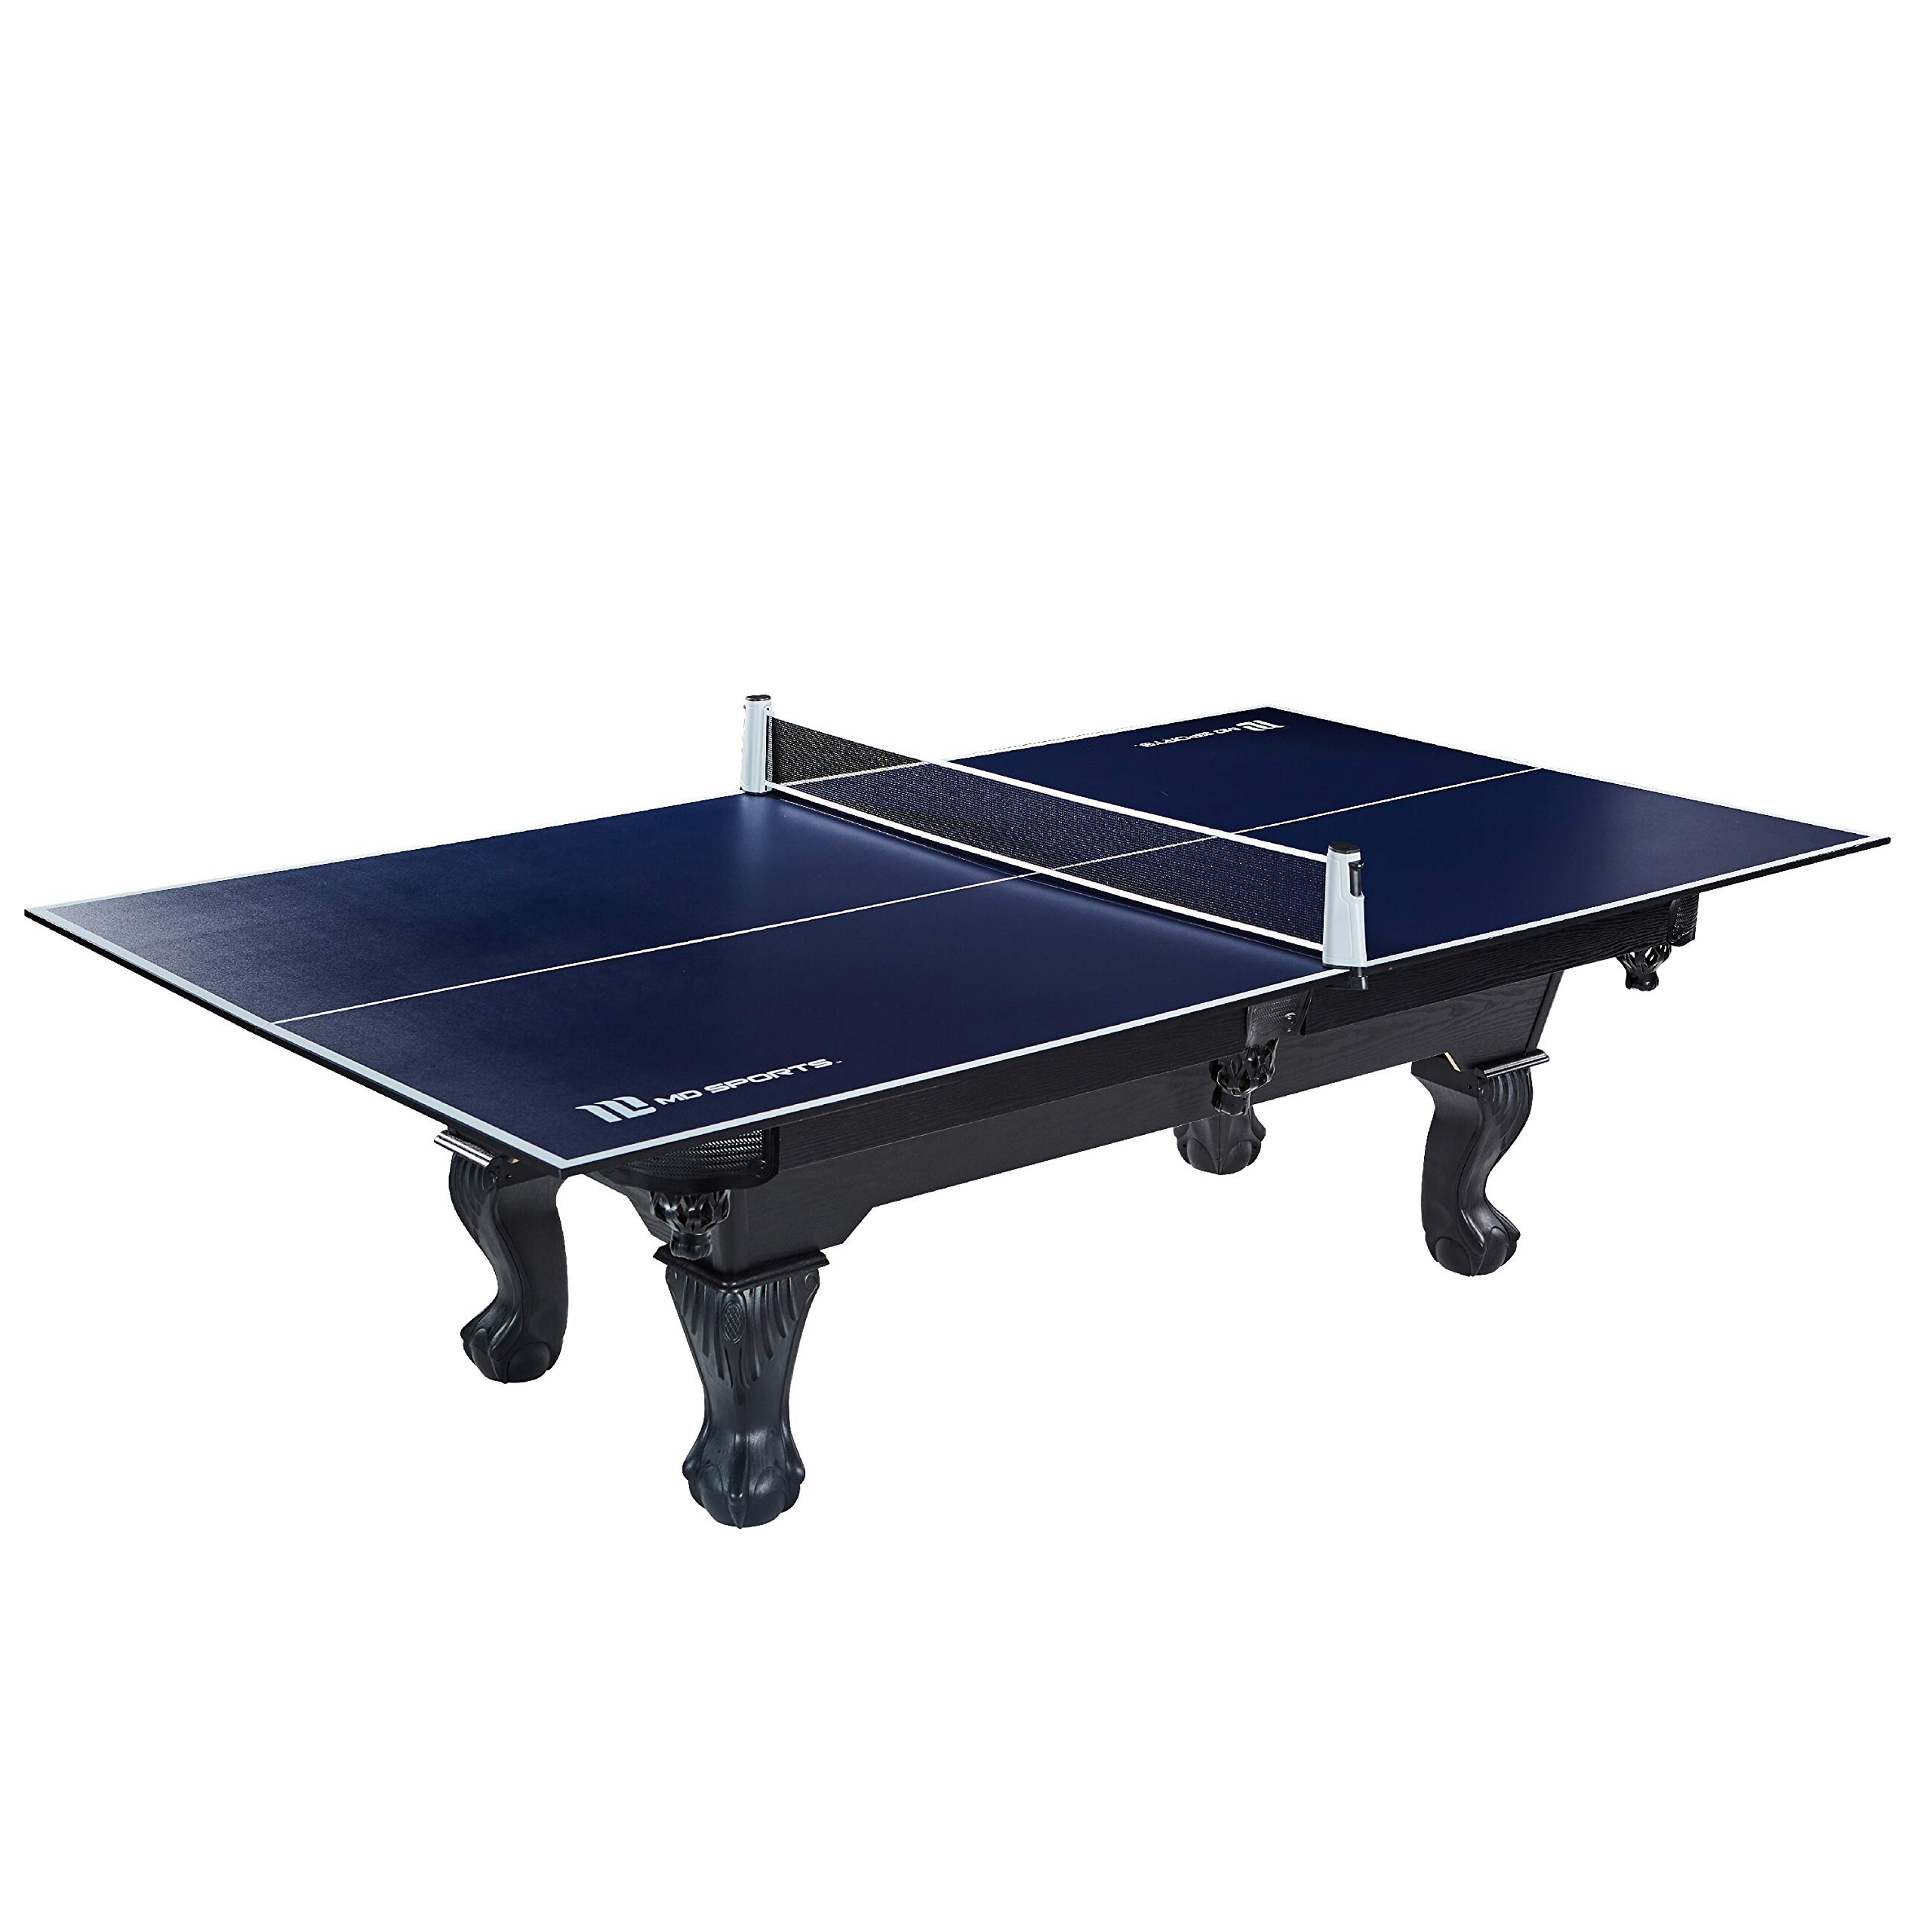 Ping Pong and Table Tennis Conversion Tops, Regulation Size - Folding, Portable Tennis Top with Net - Fits Most Standard Air Hockey and Pool Tables - Premium, Fun, Easy Setup Game Equipment by MD Sports